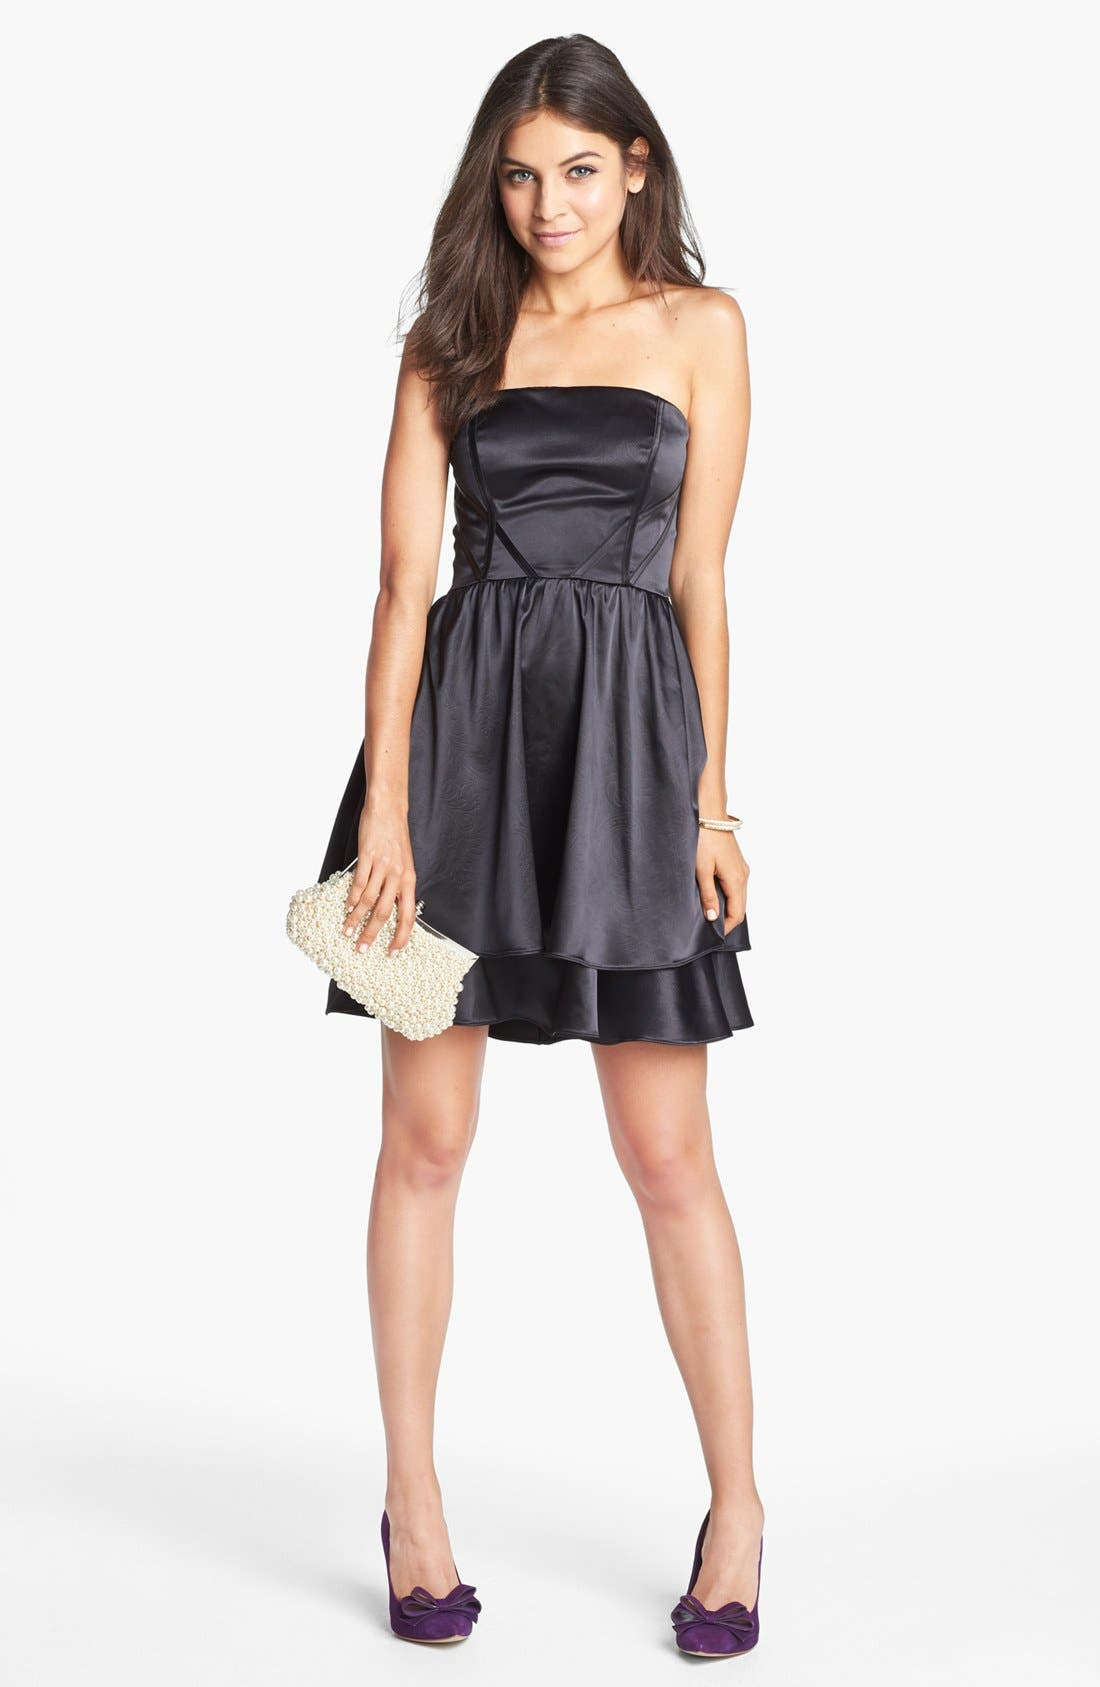 Alternate Image 1 Selected - Hailey by Adrianna Papell Patterned Satin Fit & Flare Dress